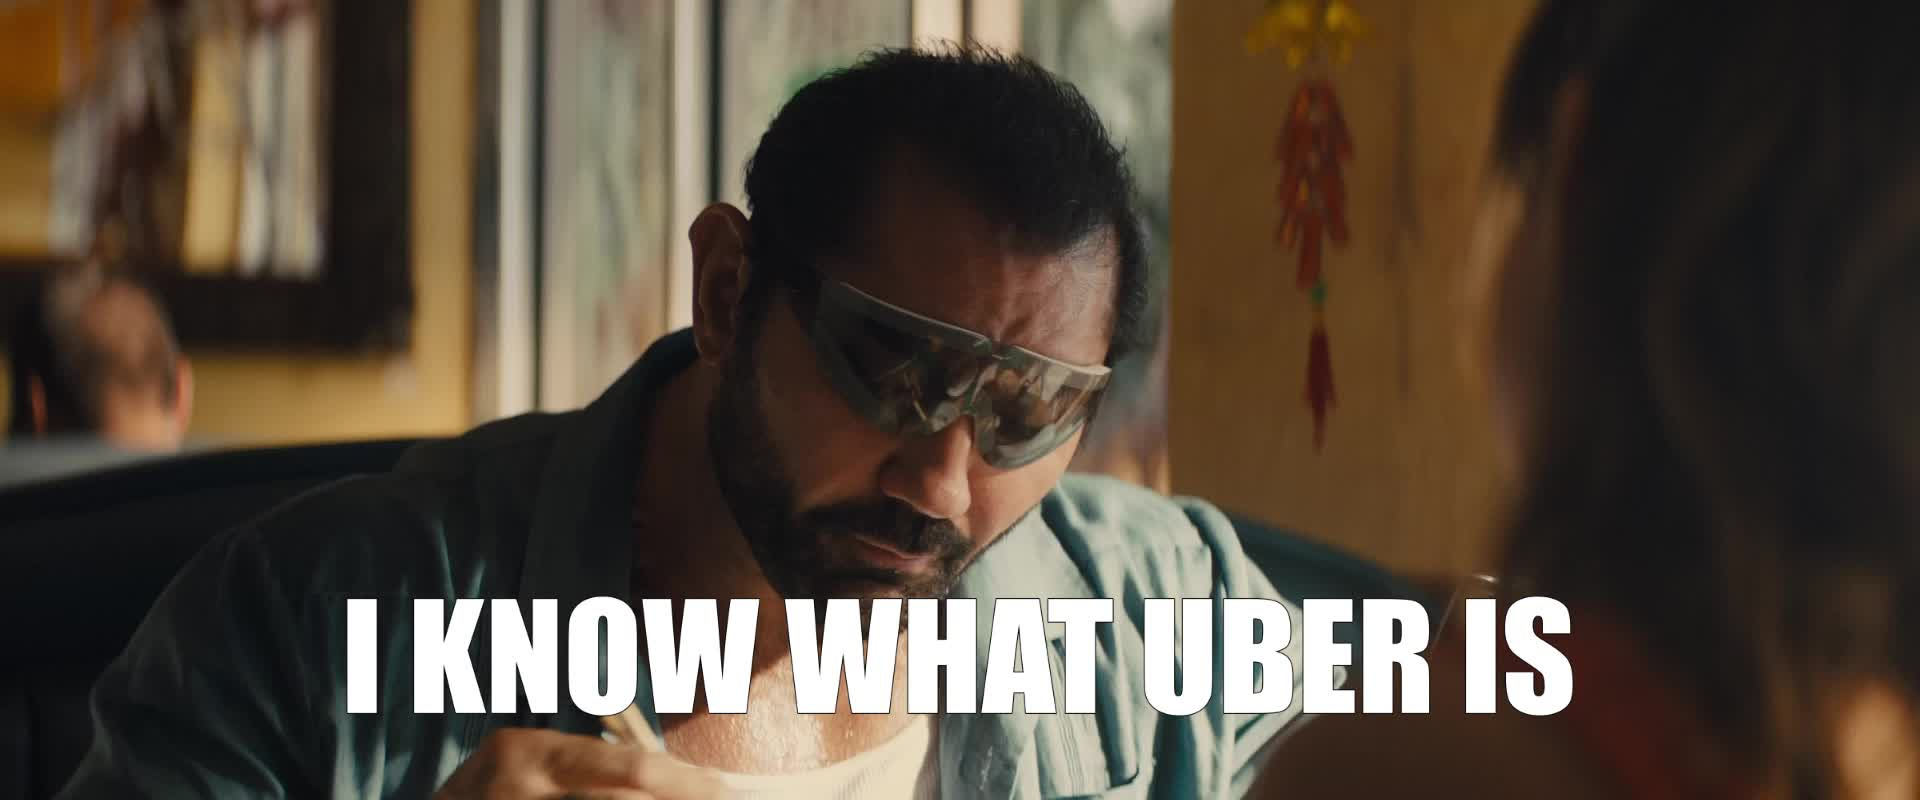 dave bautista, i know, stuber, stuber movie, uber, I Know What Uber Is GIFs